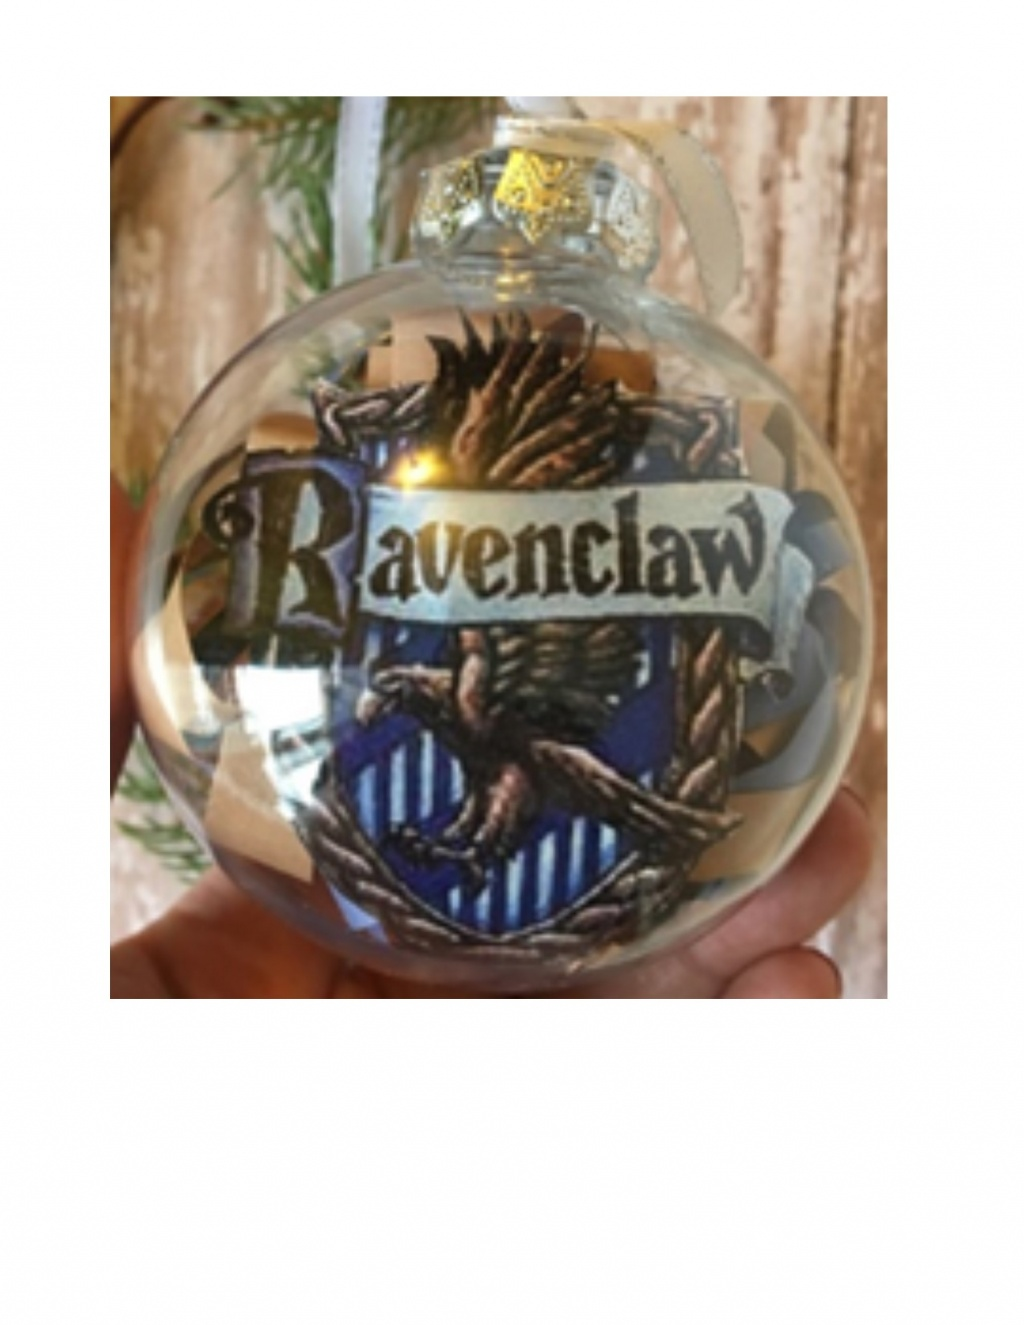 Adultish Crafts: Harry Potter Ornaments